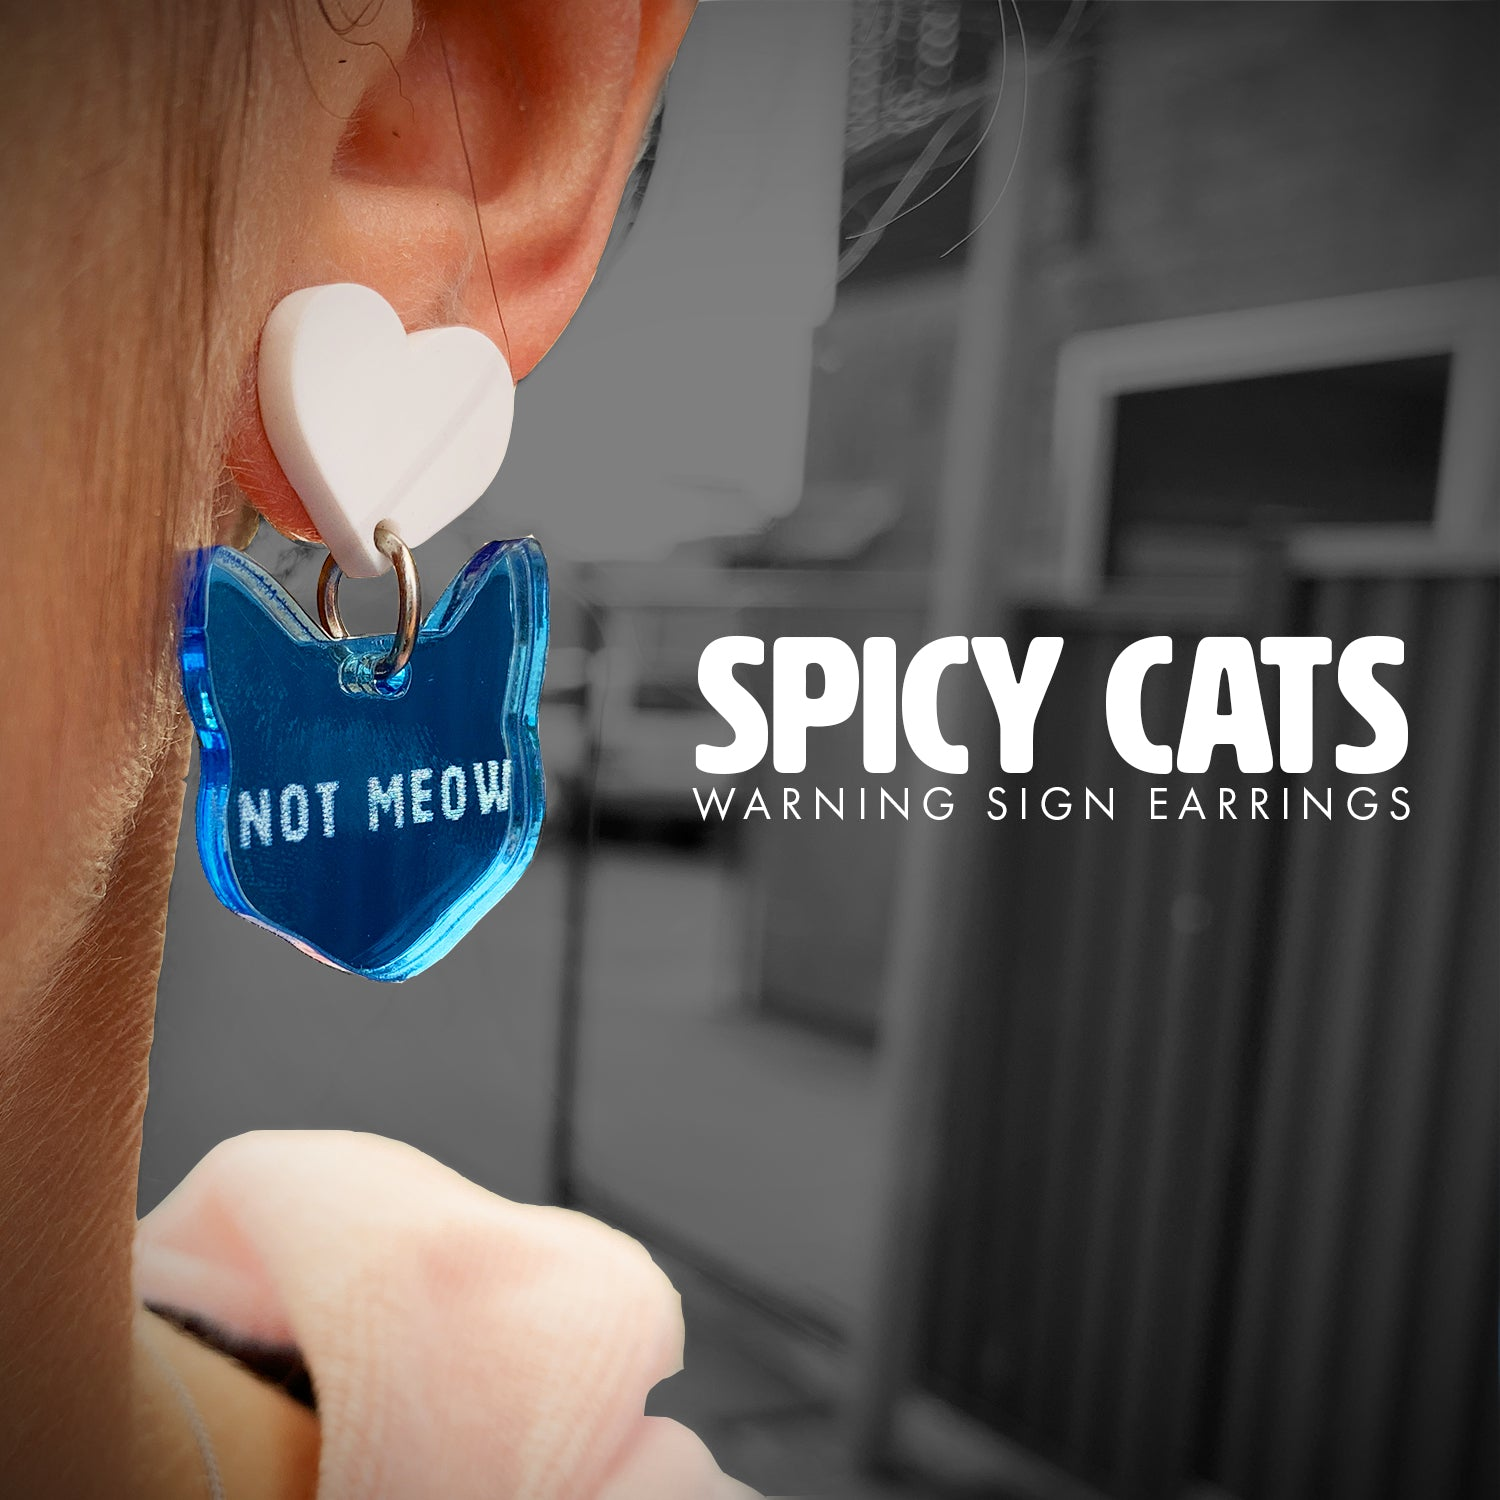 Spicy Cats - Warning Signs